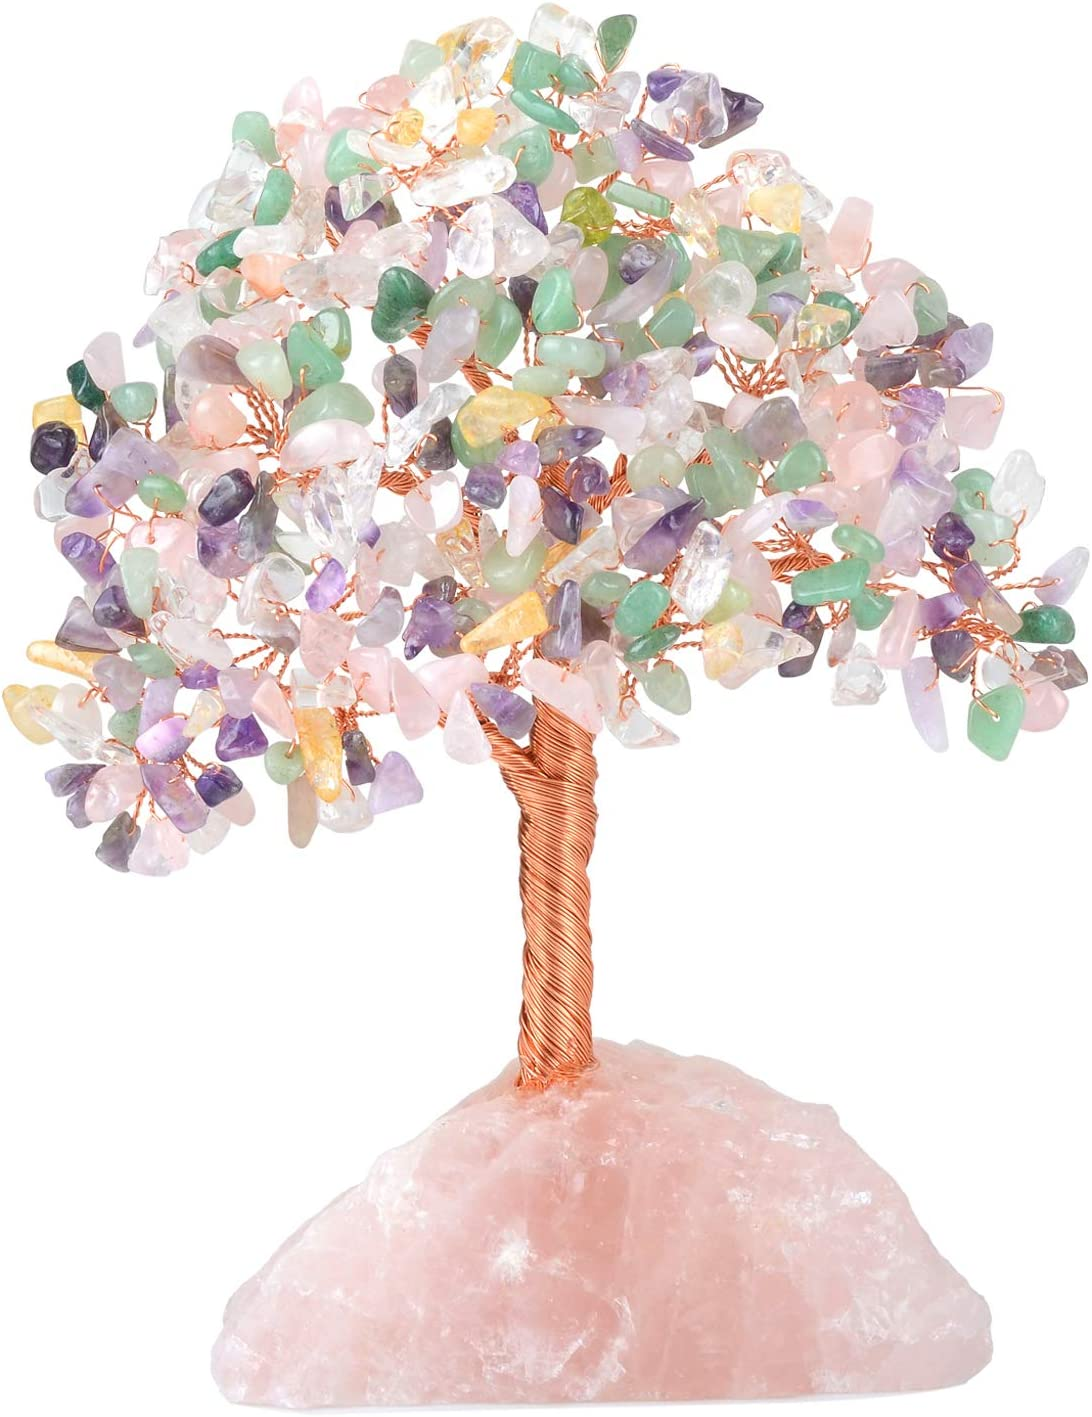 Crystal Tree Challenge the lowest price Quartz Cluster Crystals Now on sale Gemstone Rose Chakra